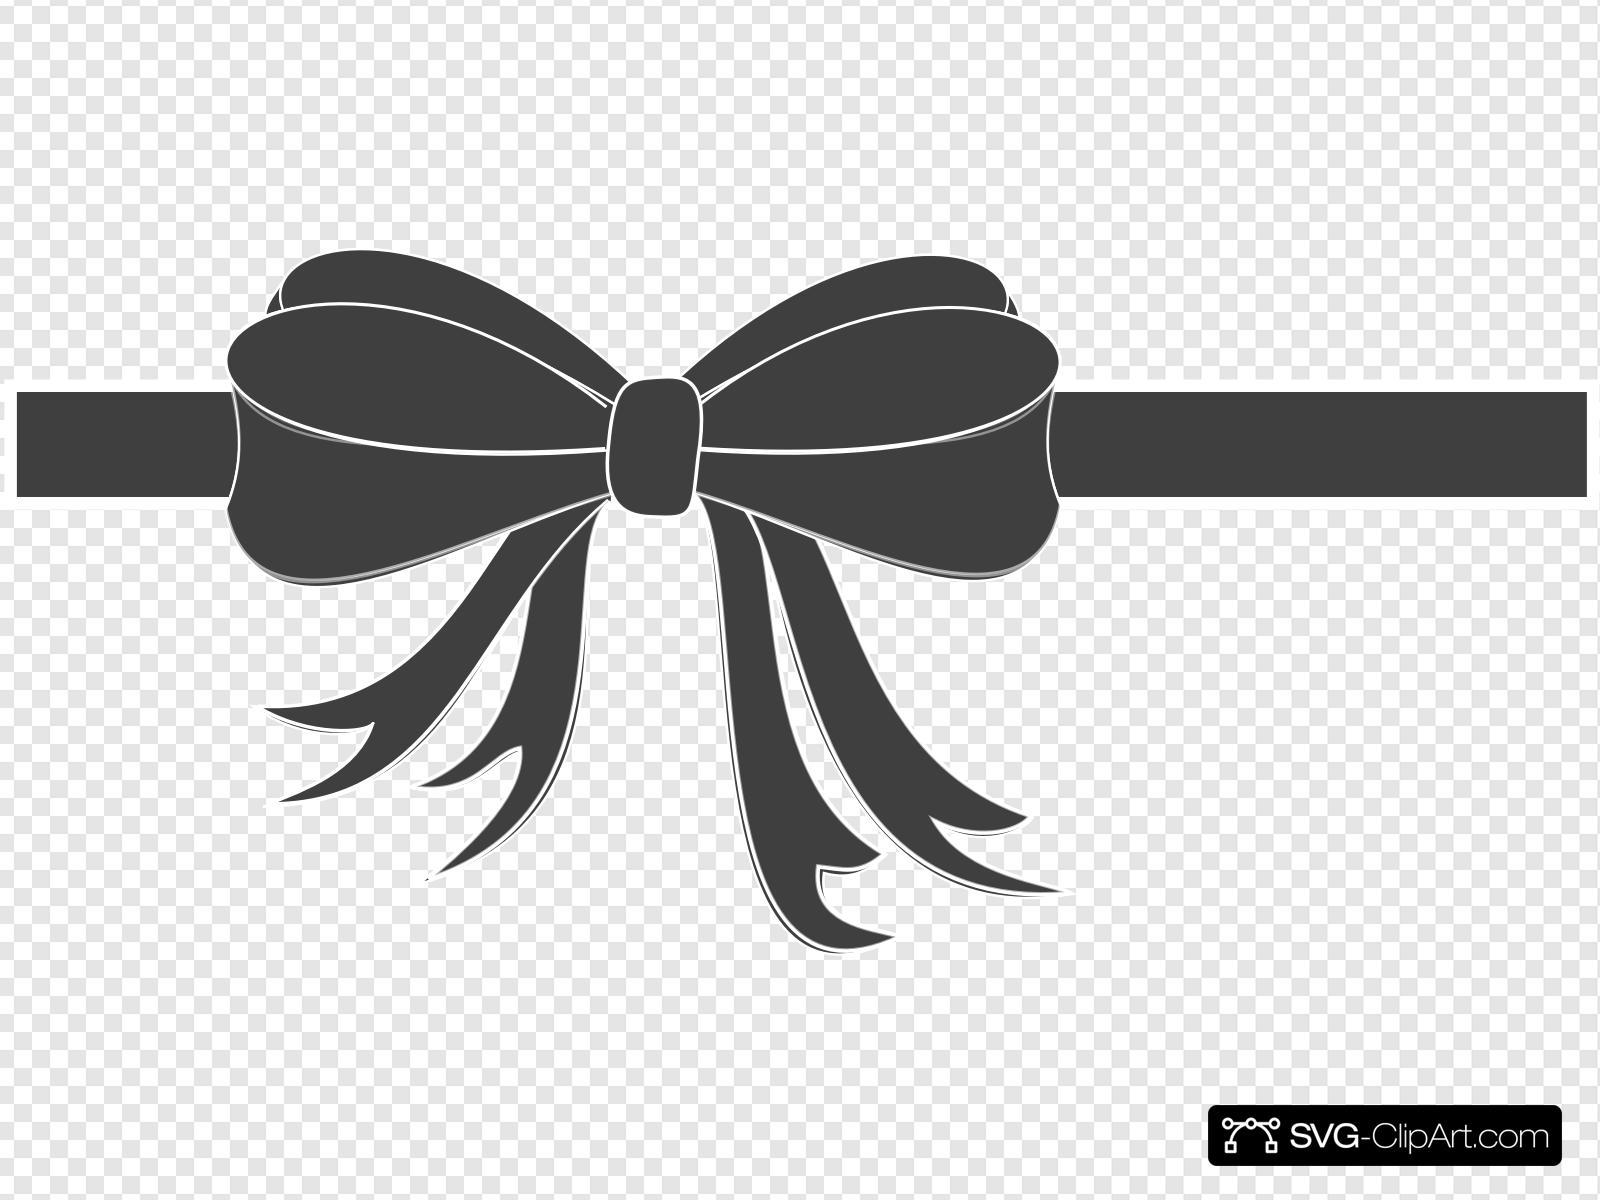 Tiff Bow Clip art, Icon and SVG.